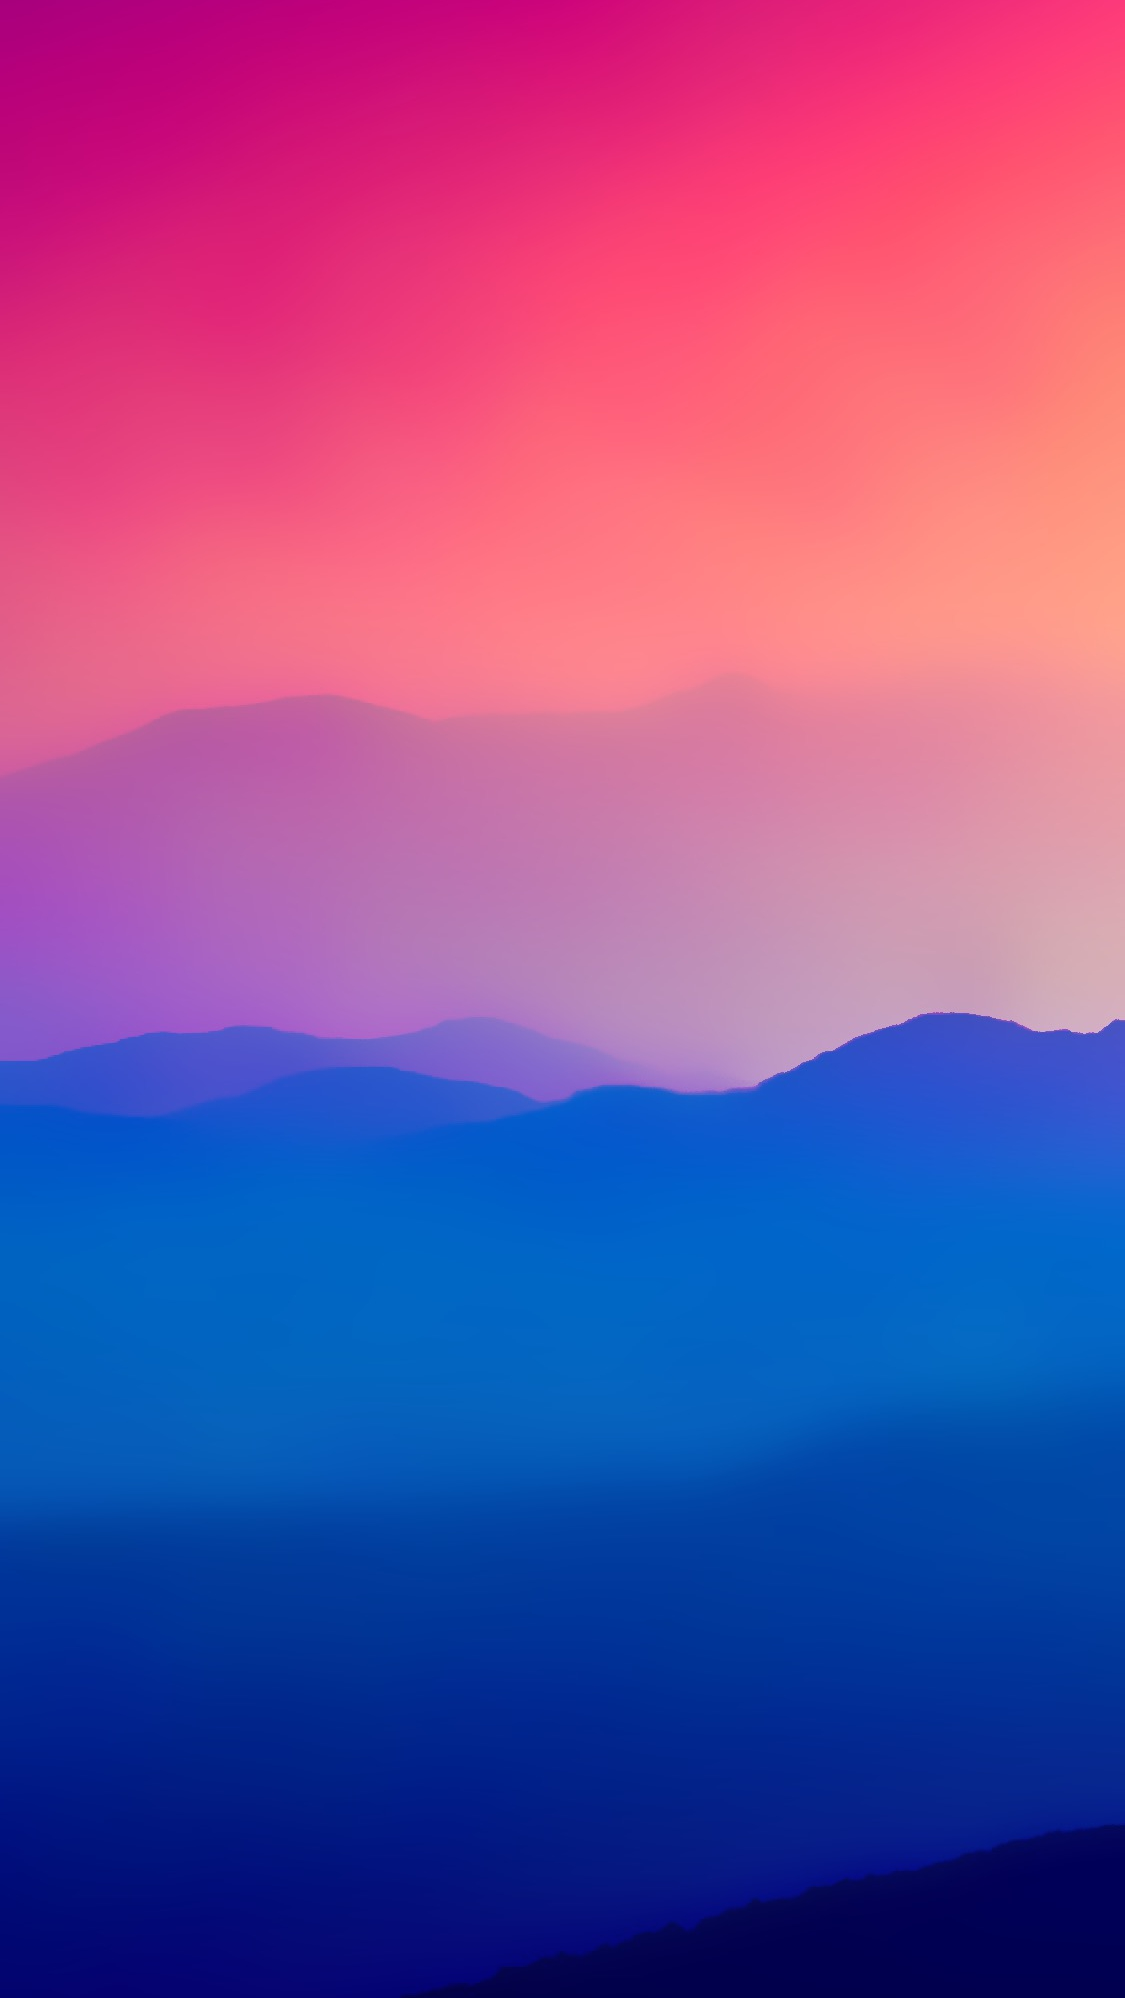 Mist Mountains Colorful iPhone Wallpaper iphoneswallpapers com